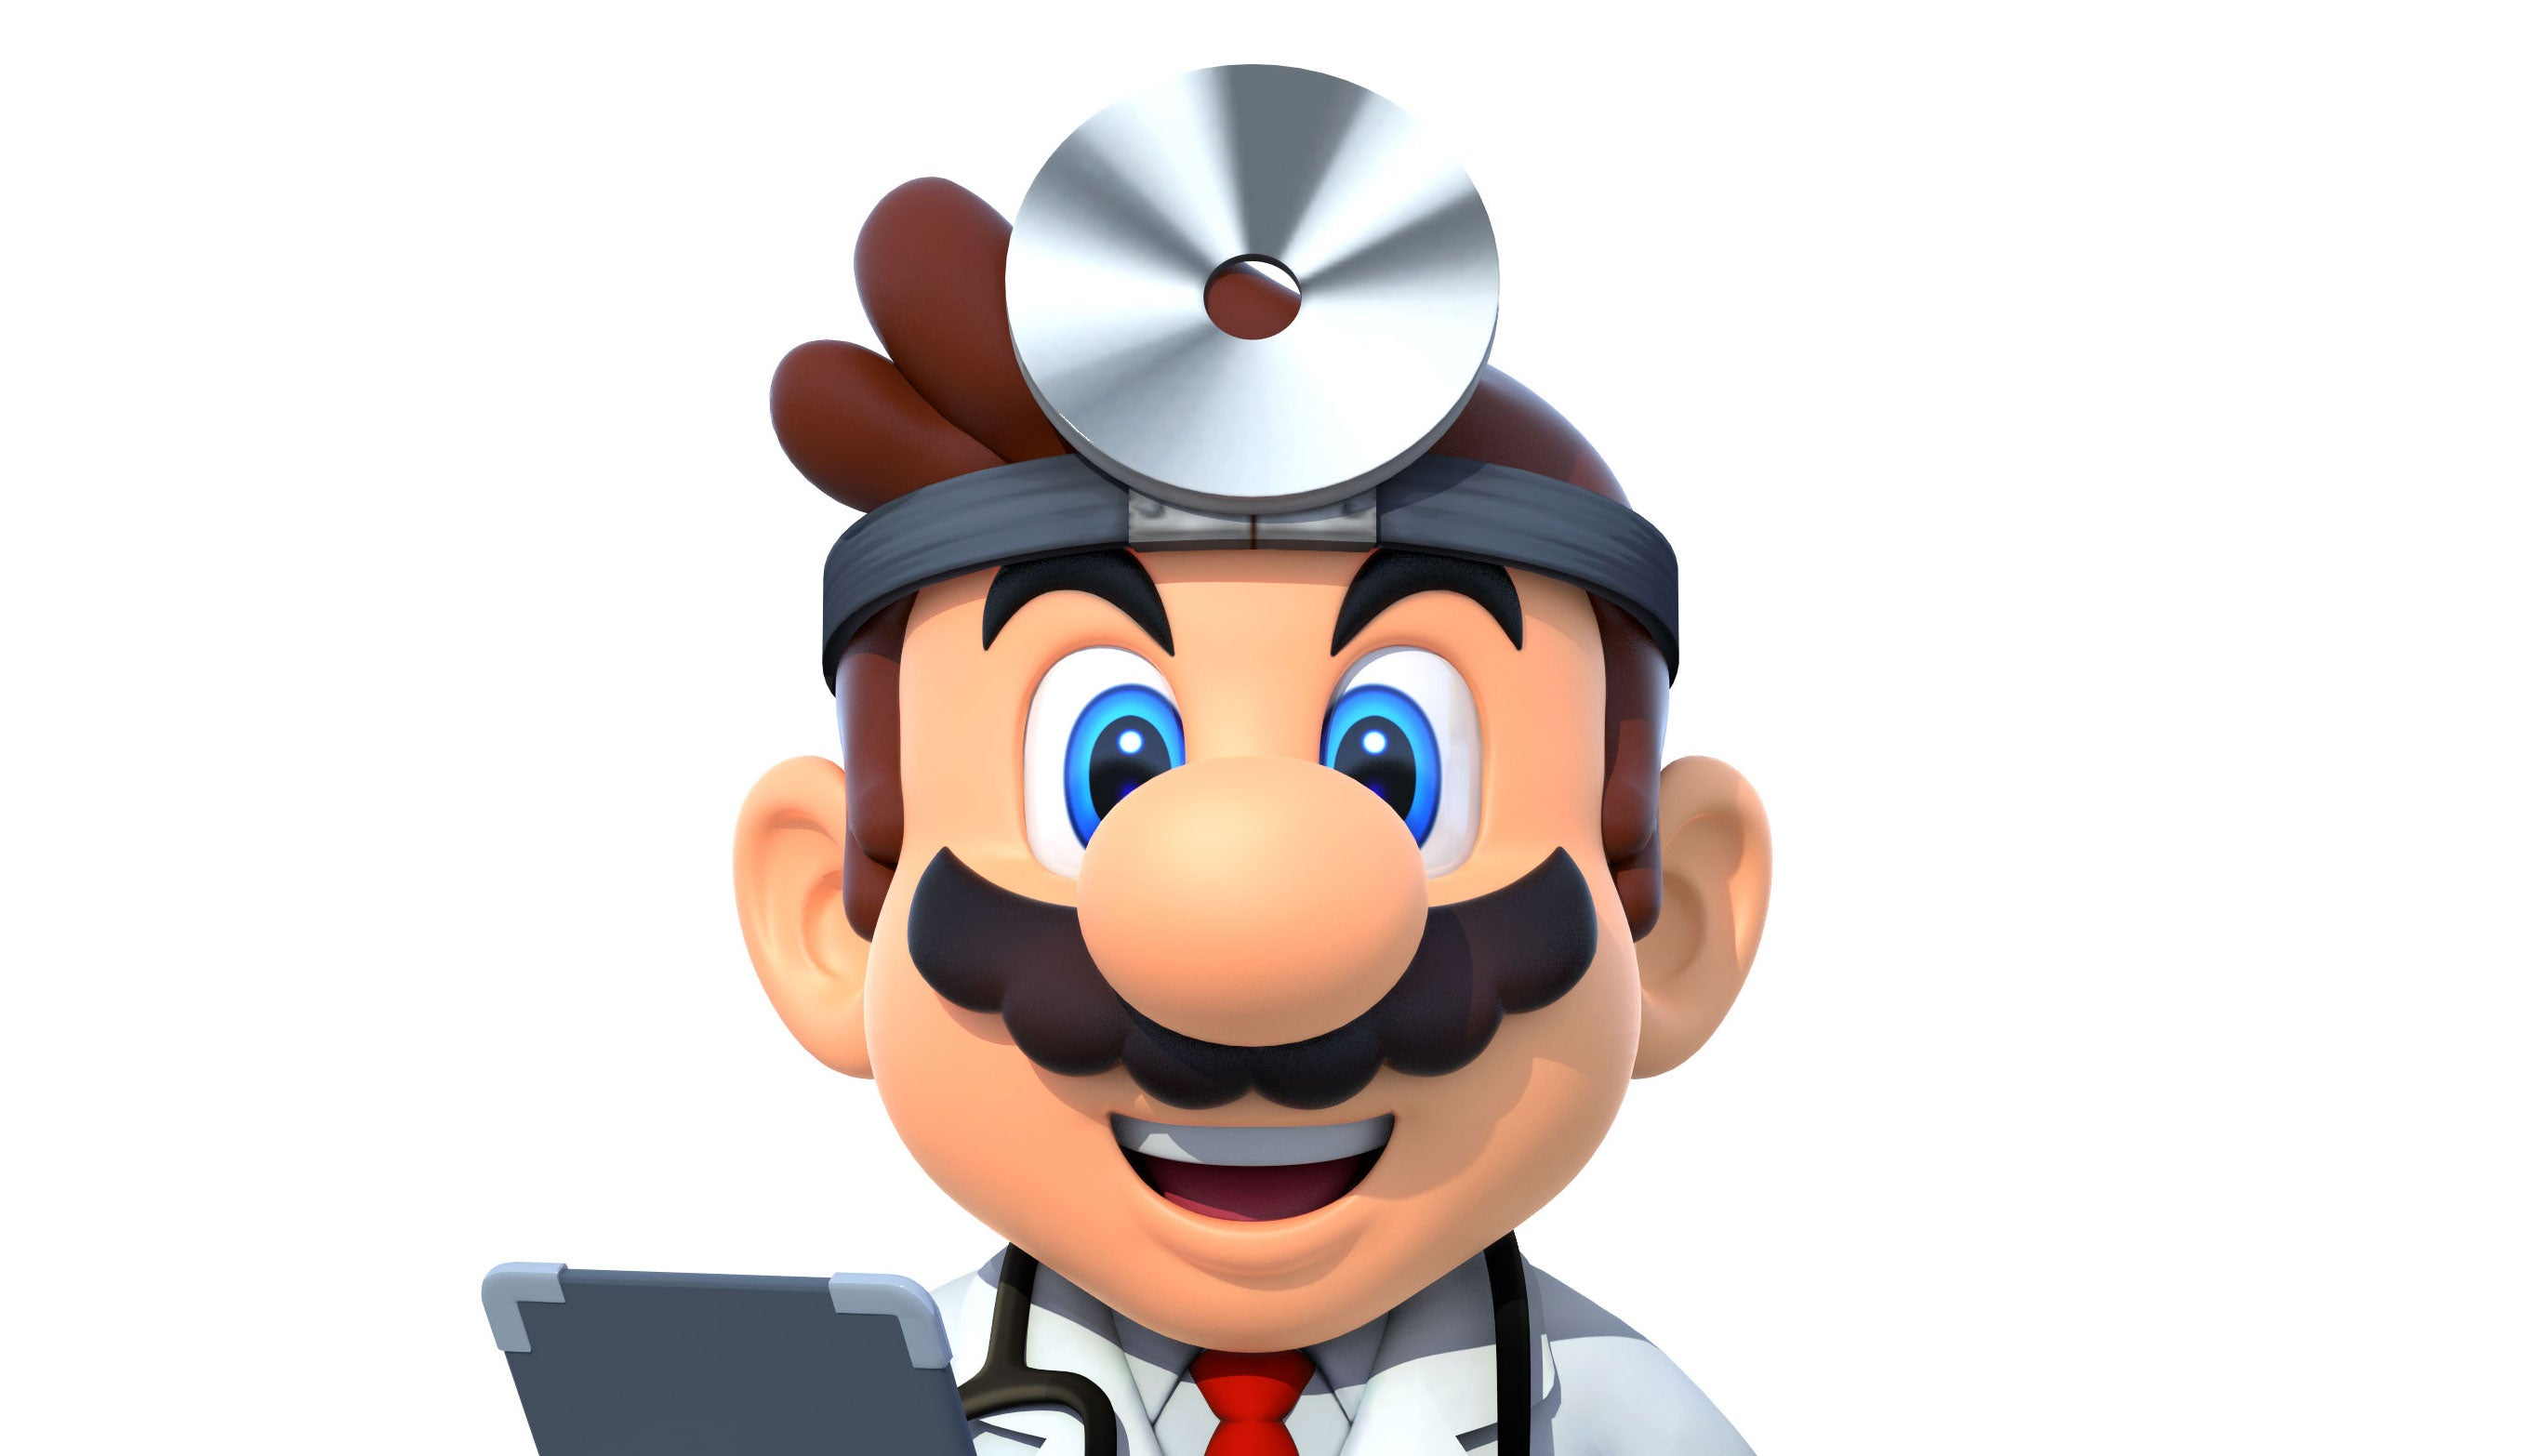 A New Dr. Mario Game Is Coming To Phones